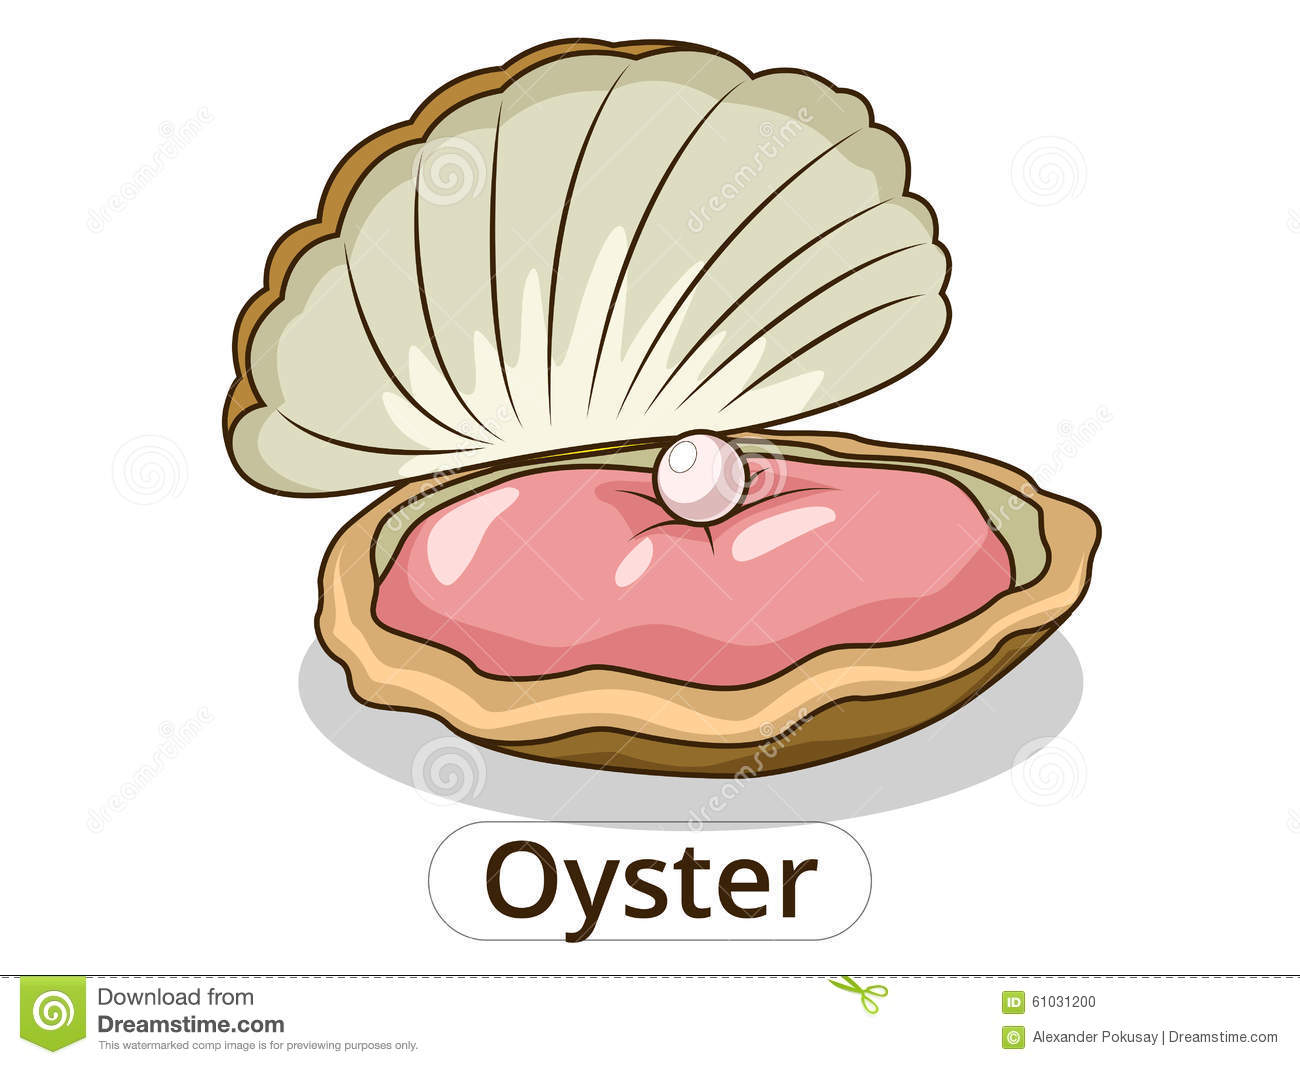 Oyster Clipart | Clipart Panda - Free Clipart Images